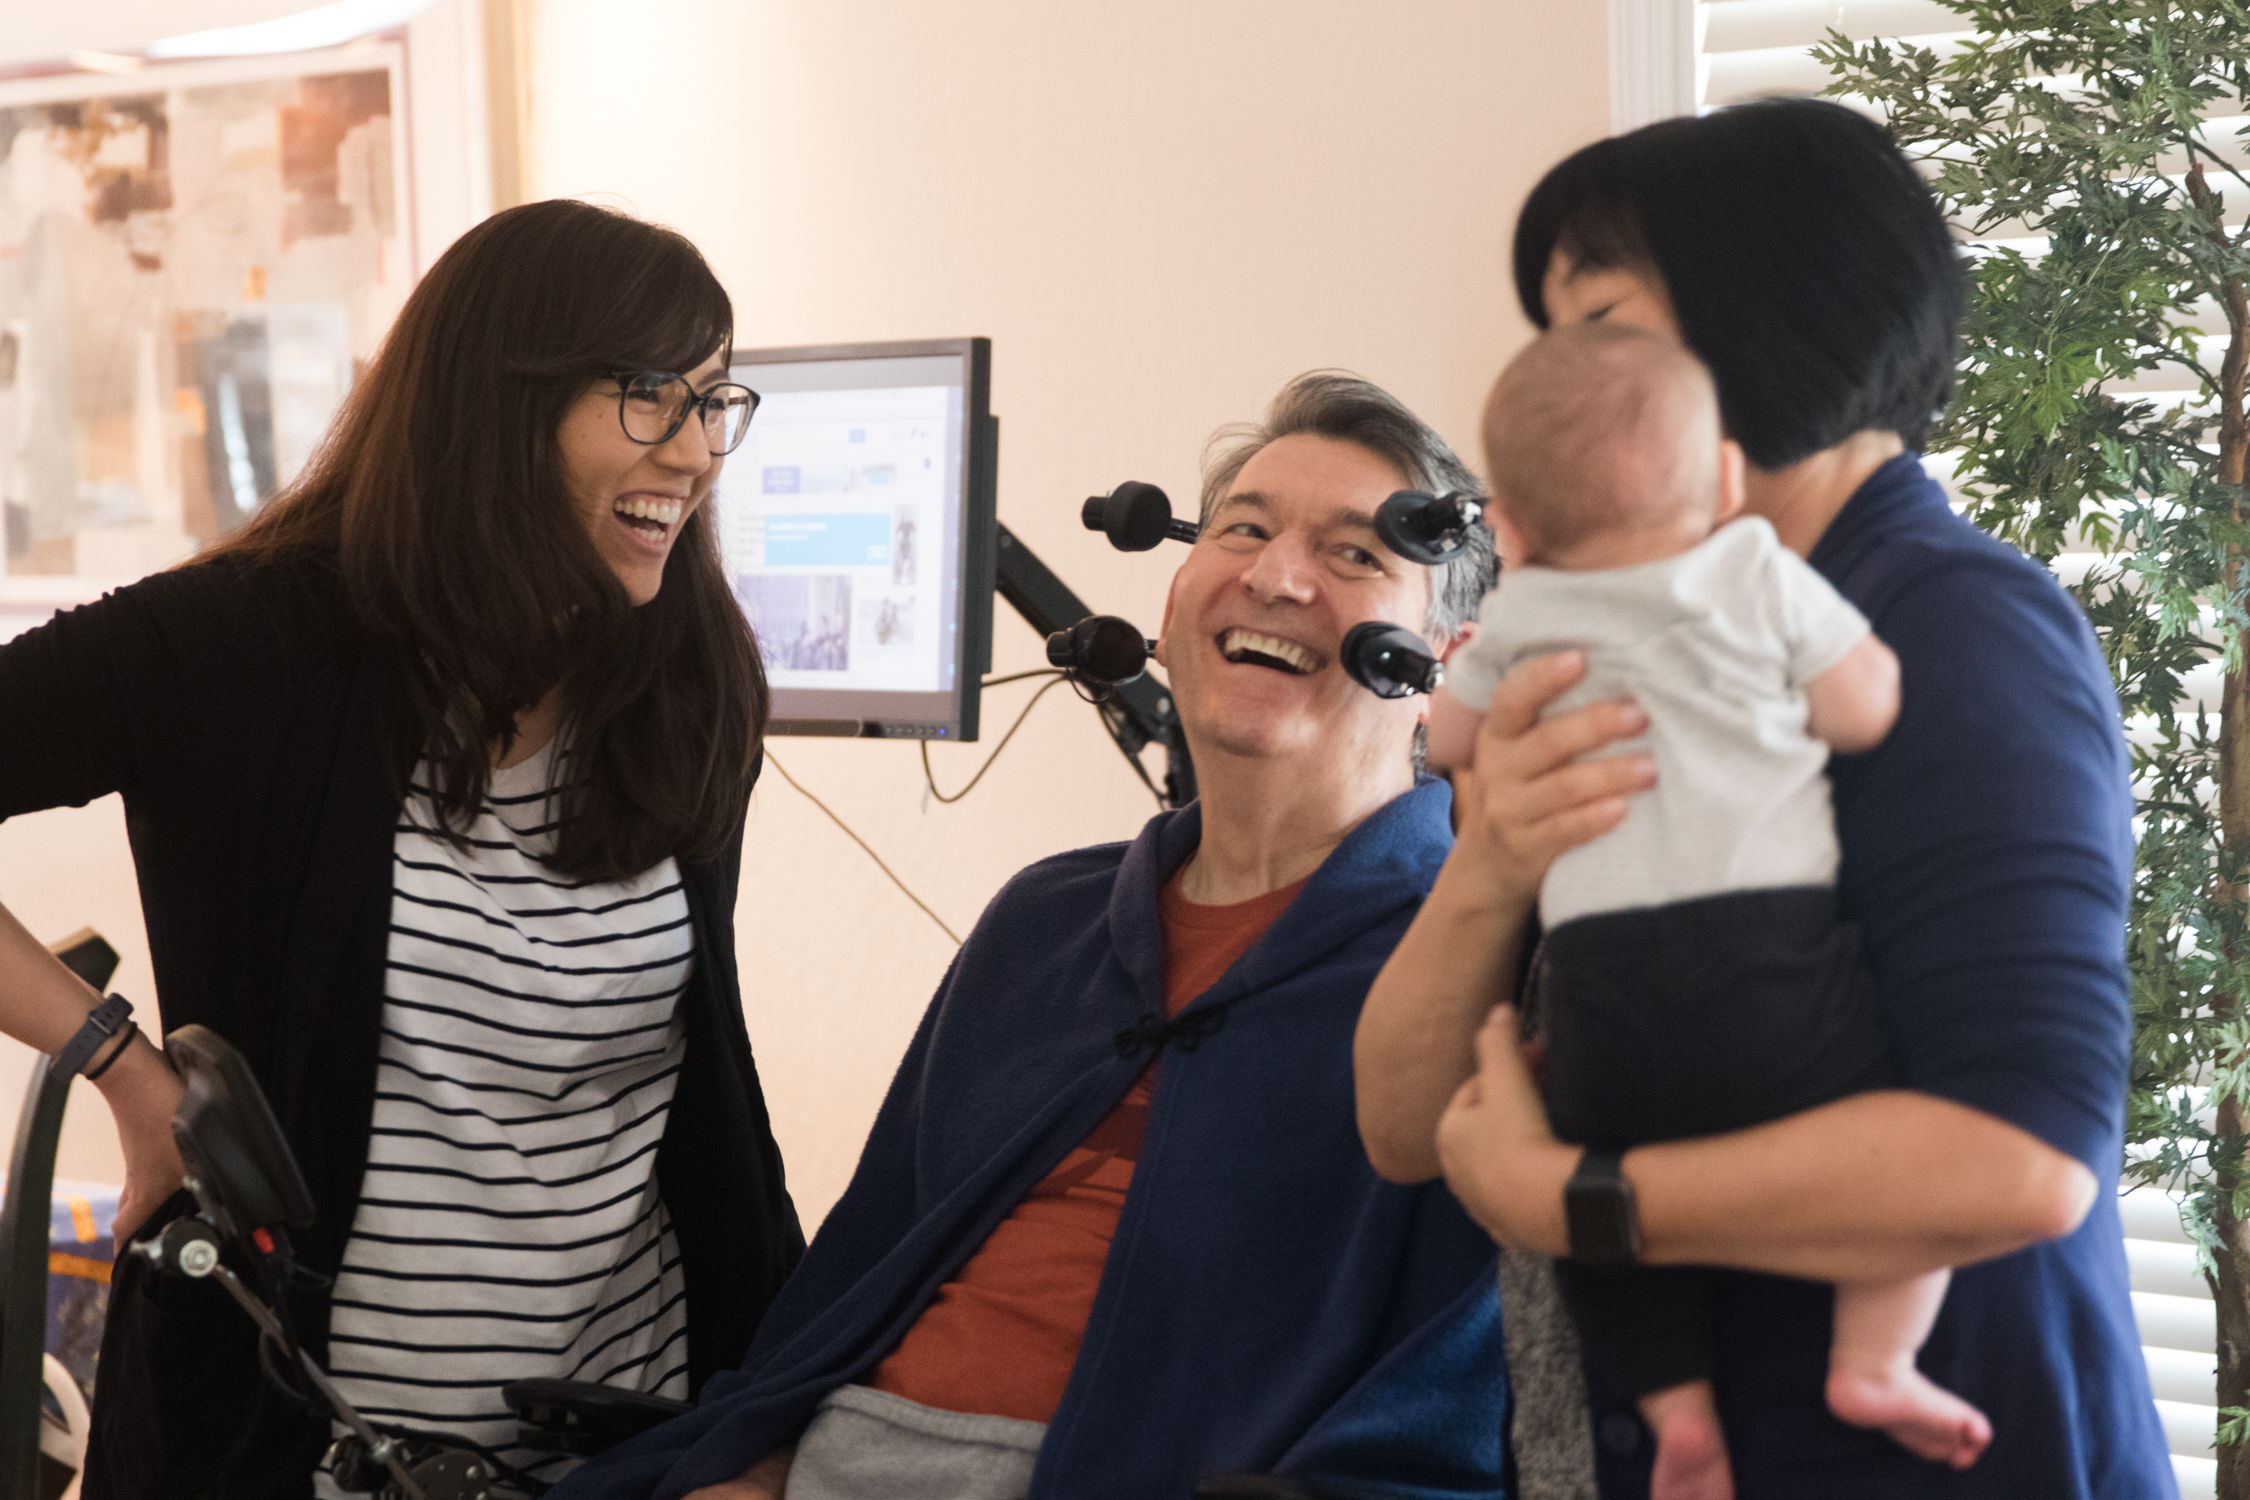 Jon Ferraiolo and wife Karen Kang laugh with their daughter Nikki Ferraiolo as they spend time with their grandson, Theo, on March 13, 2018.